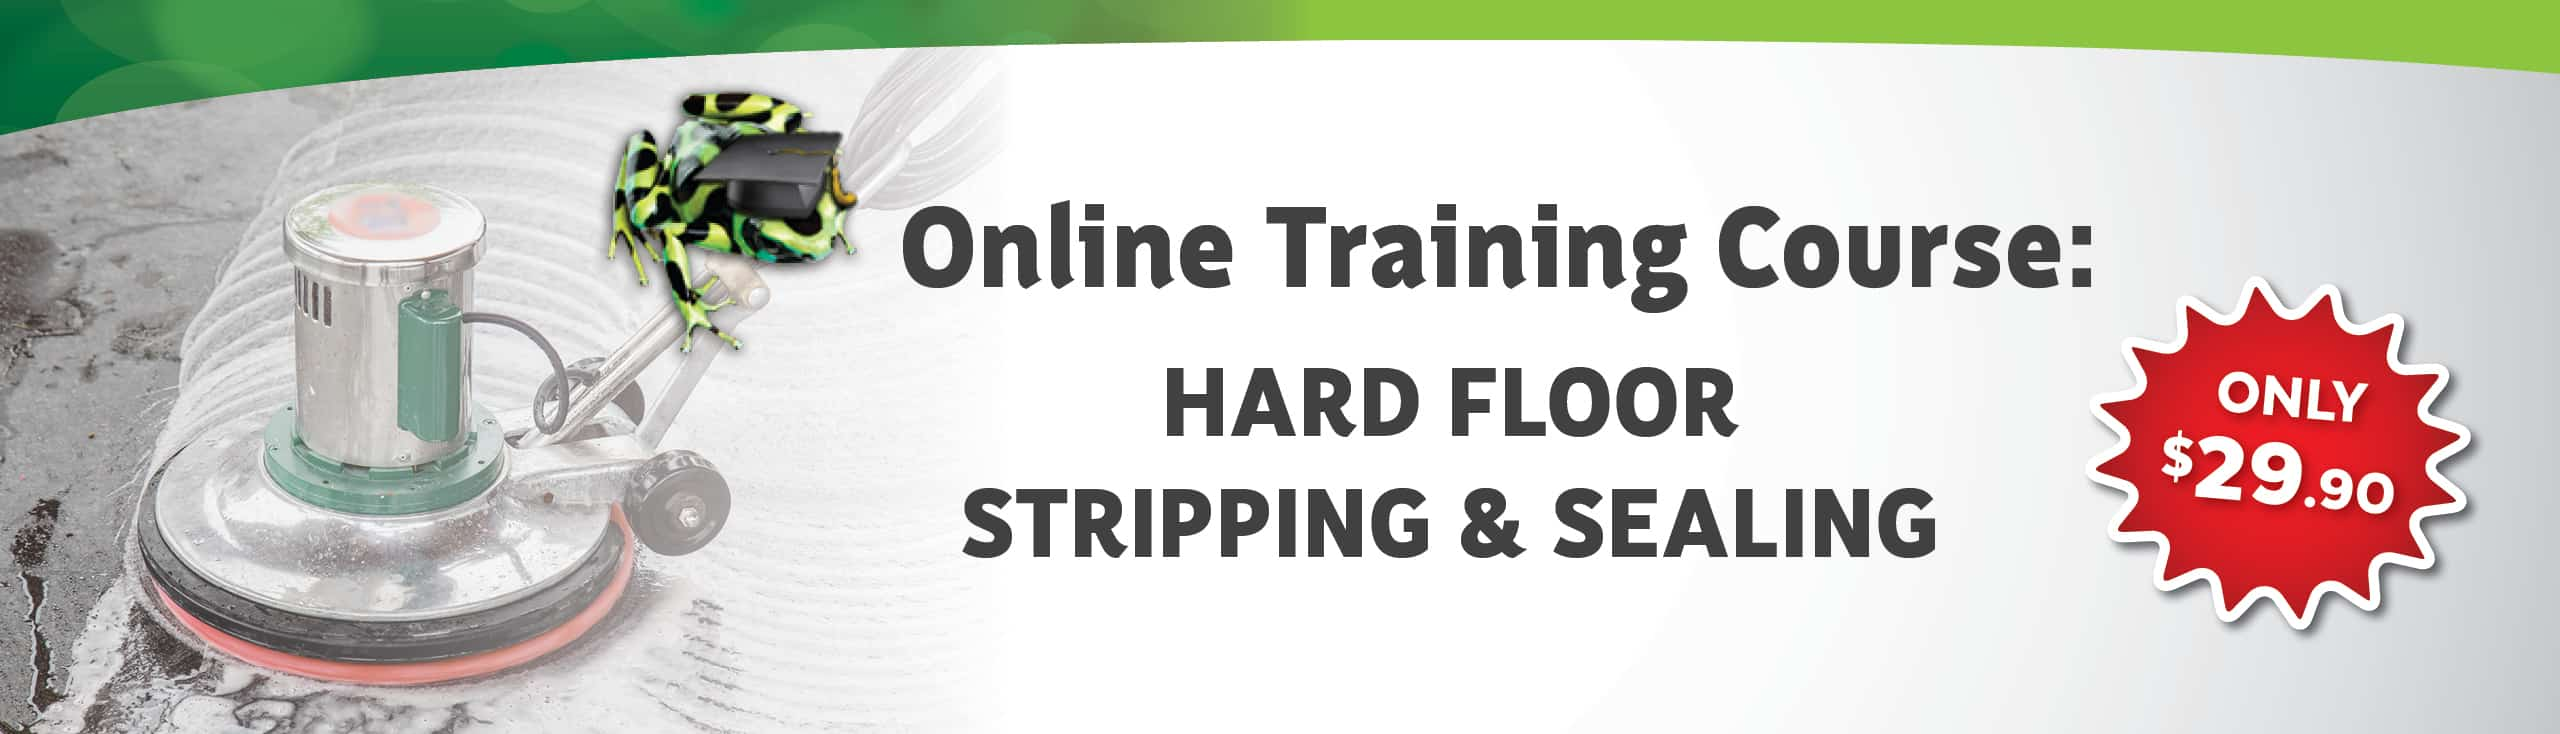 Hard Floor Stripping & Sealing Course